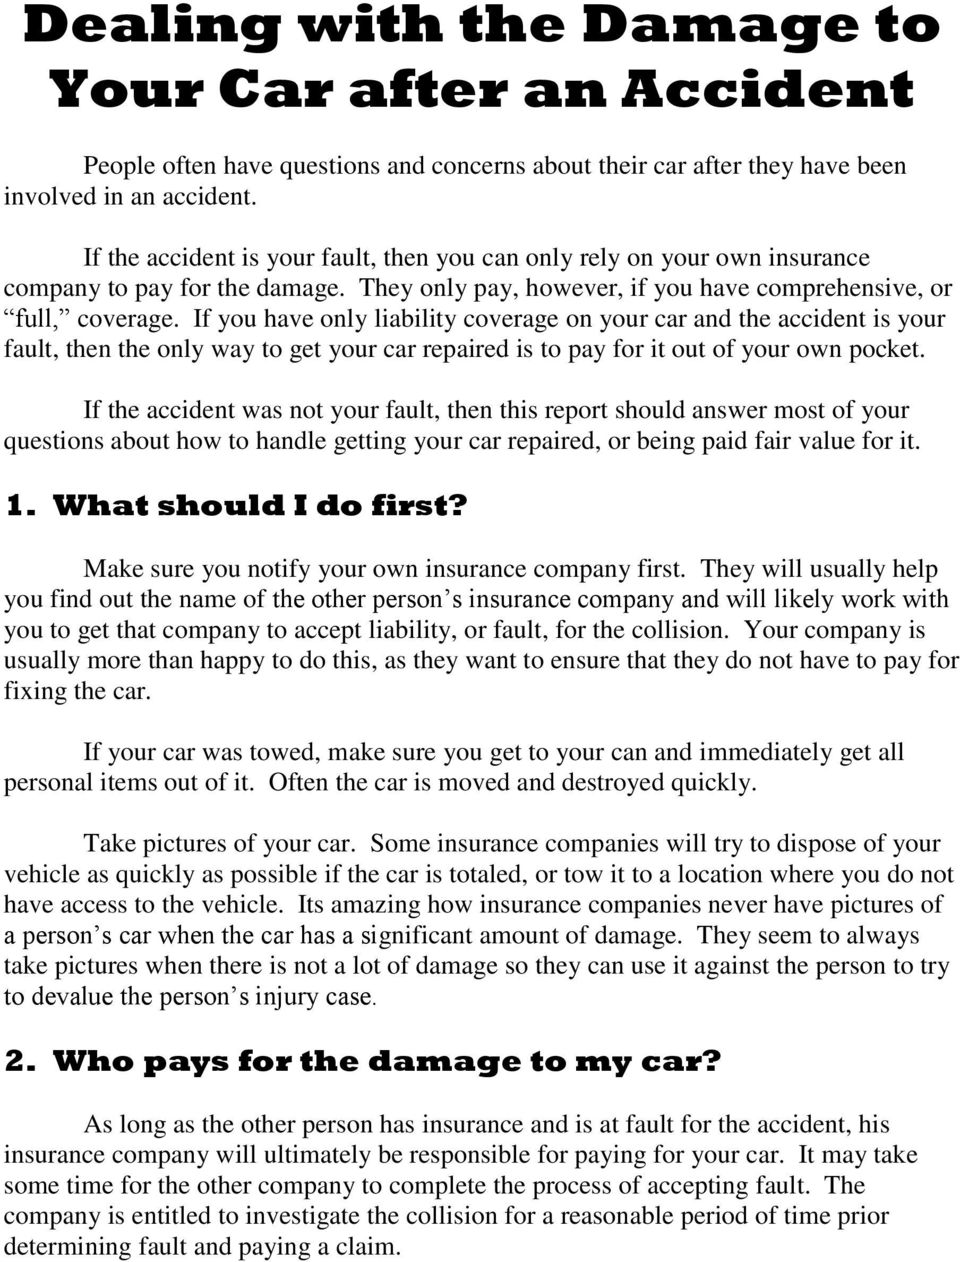 If you have only liability coverage on your car and the accident is your fault, then the only way to get your car repaired is to pay for it out of your own pocket.